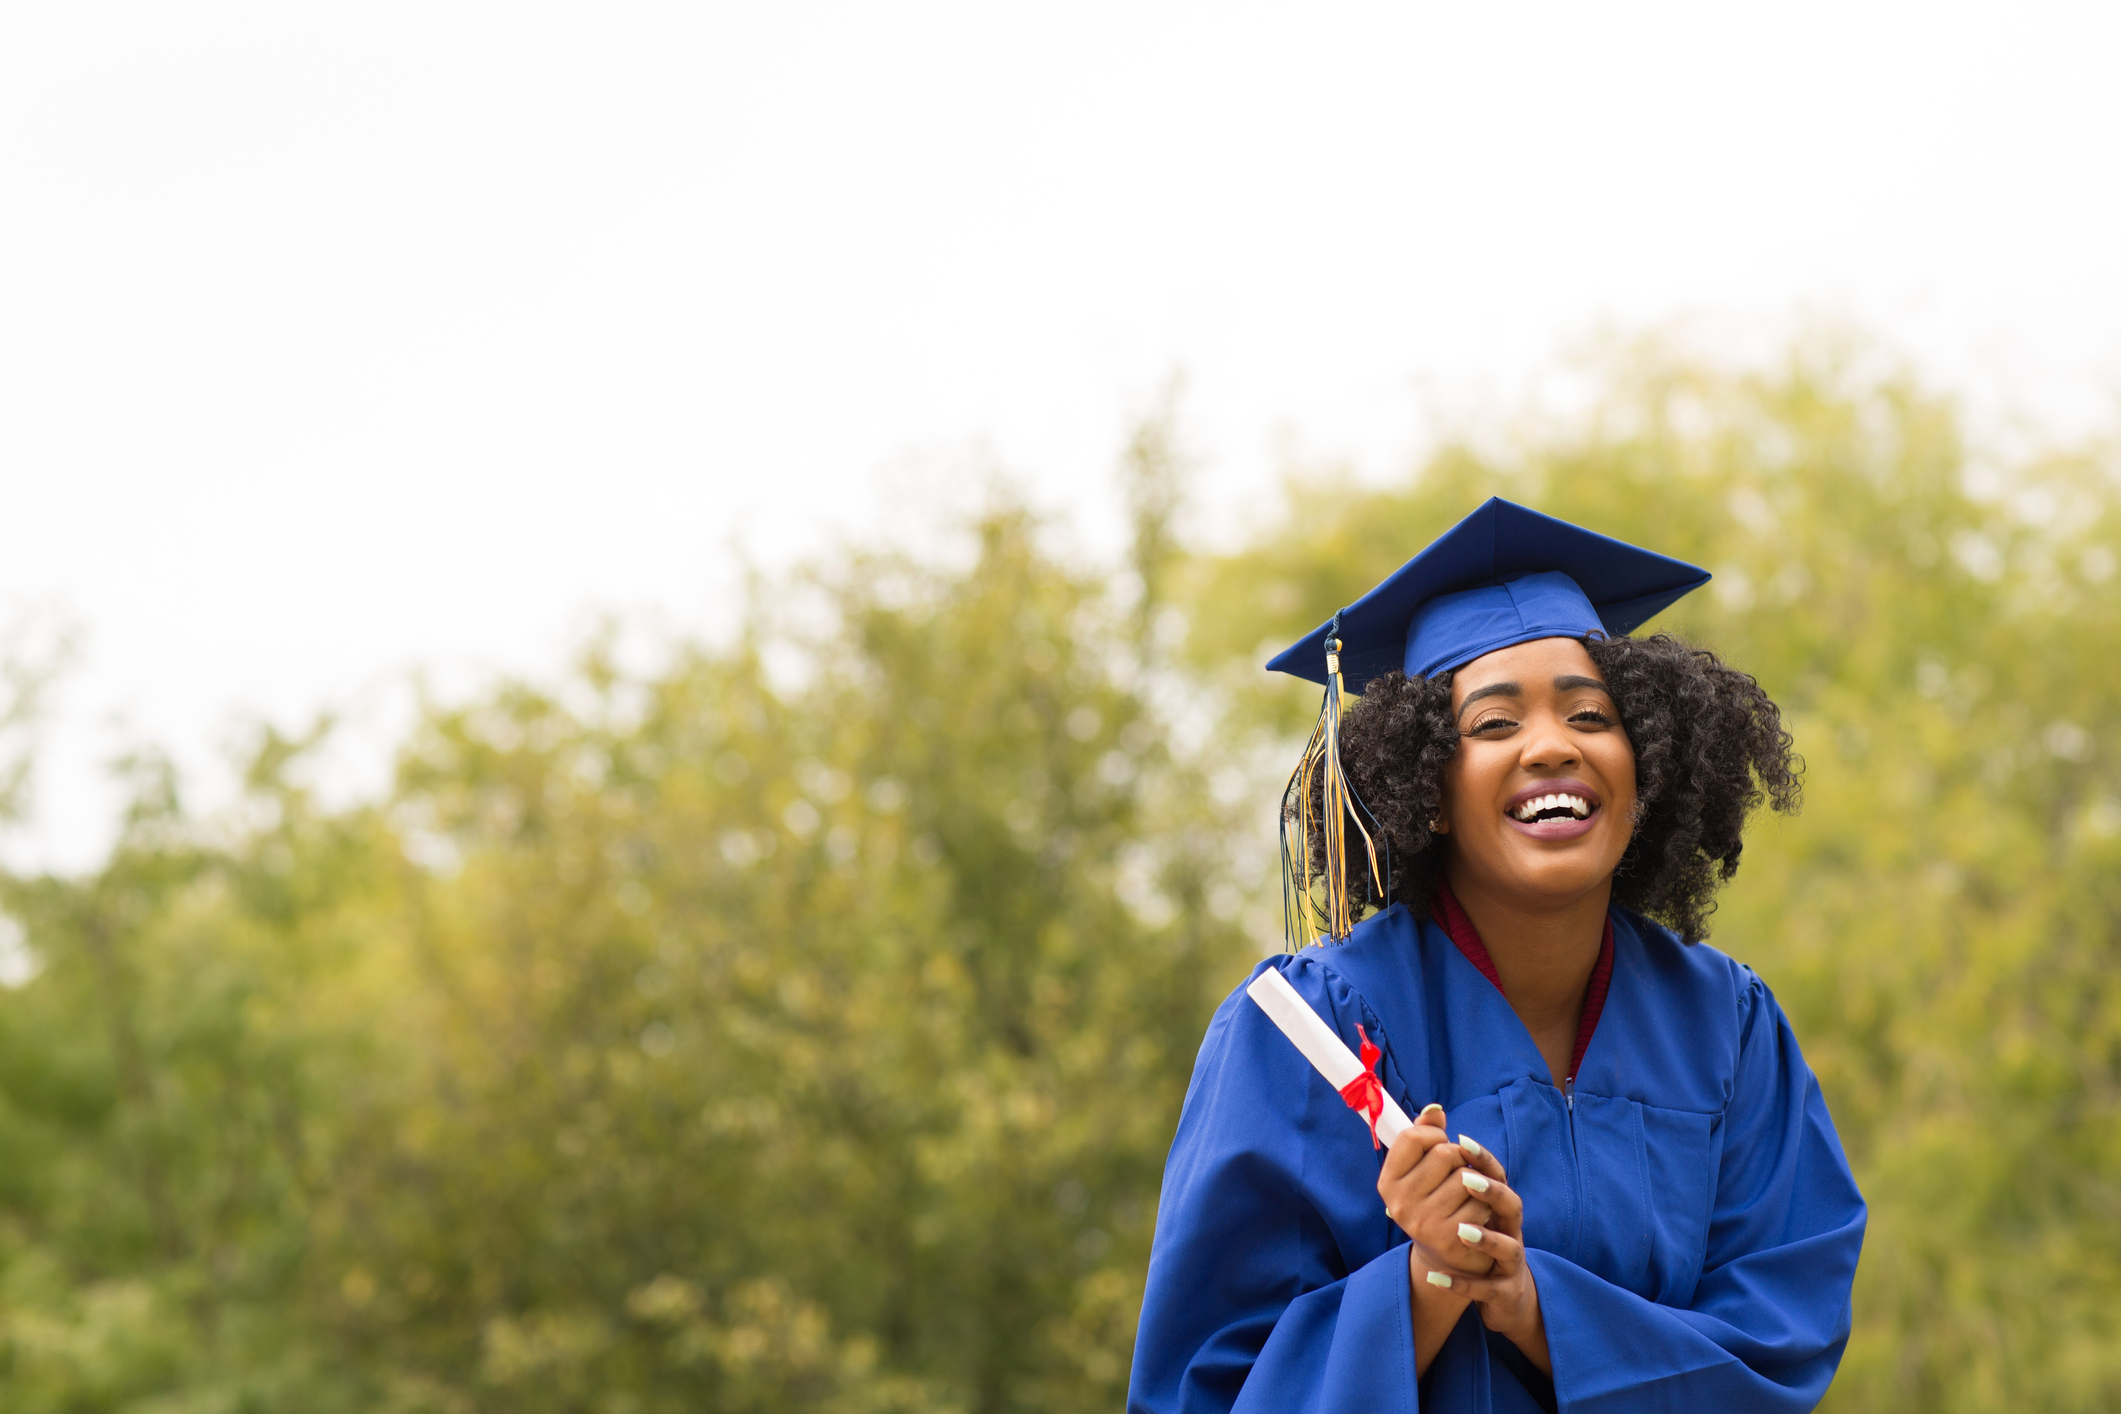 young smiling woman on graduation day wearing robe and mortarboard and holding diploma